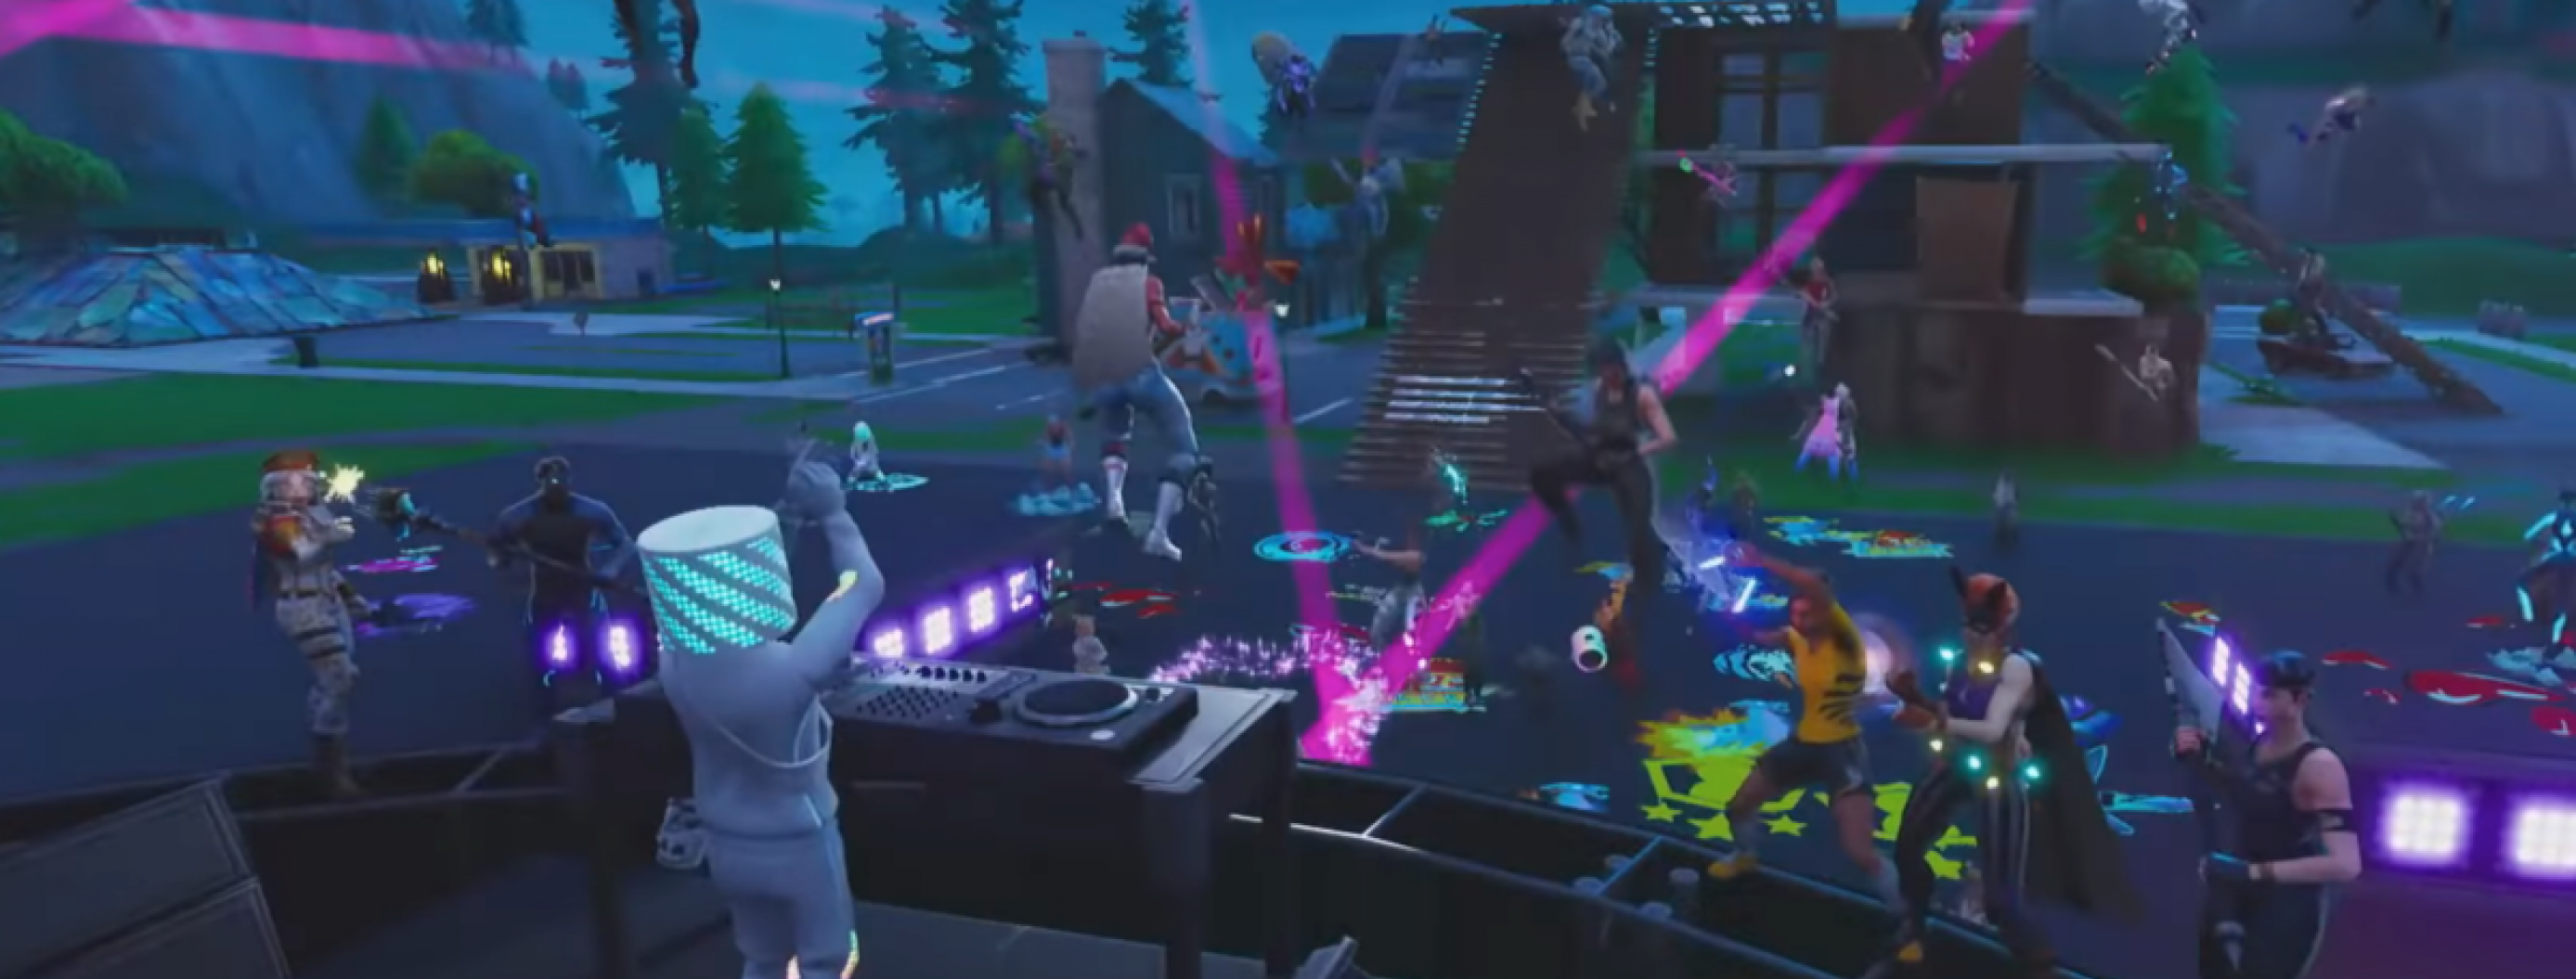 10 Million 'Fortnite' Players Logged In to Watch EDM Star Marshmello Perform a 10-Minute Concert